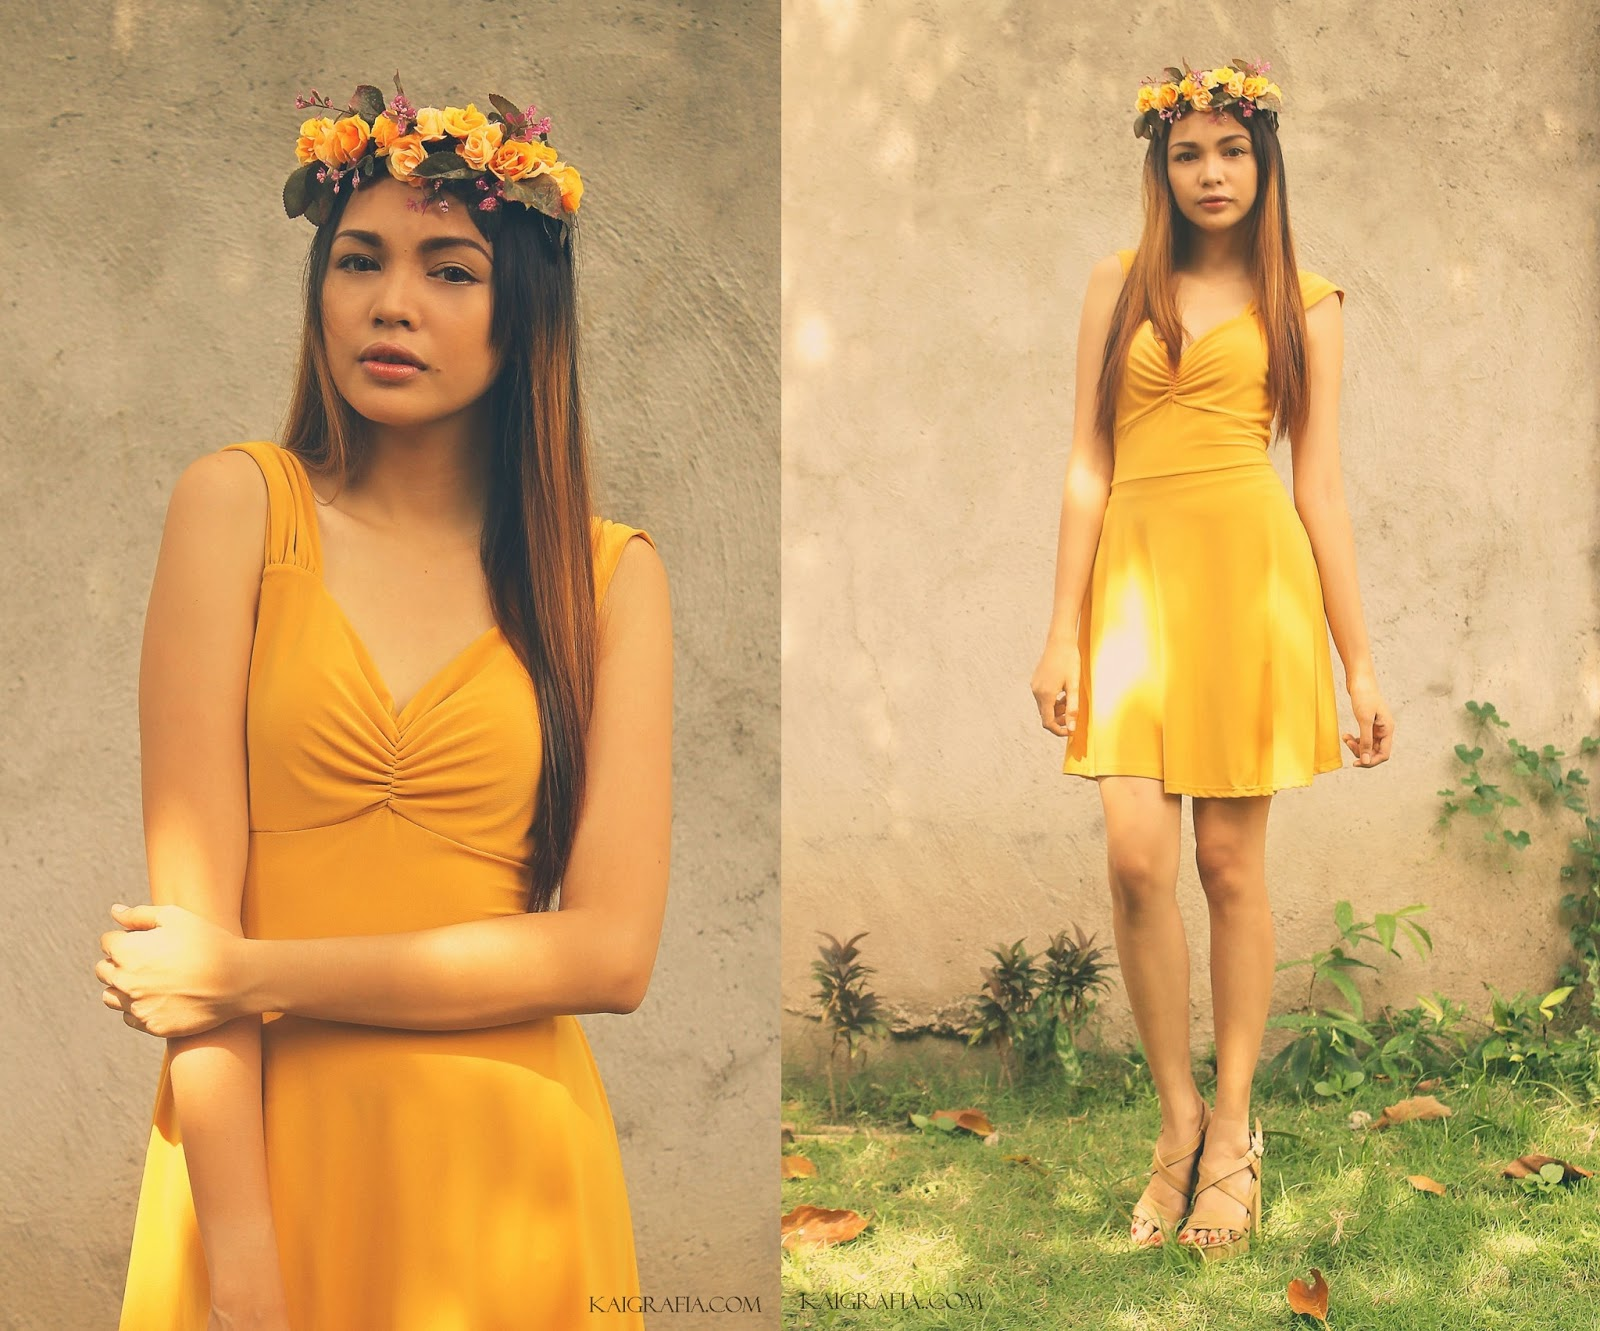 how to wear yellow dress and flower crowns